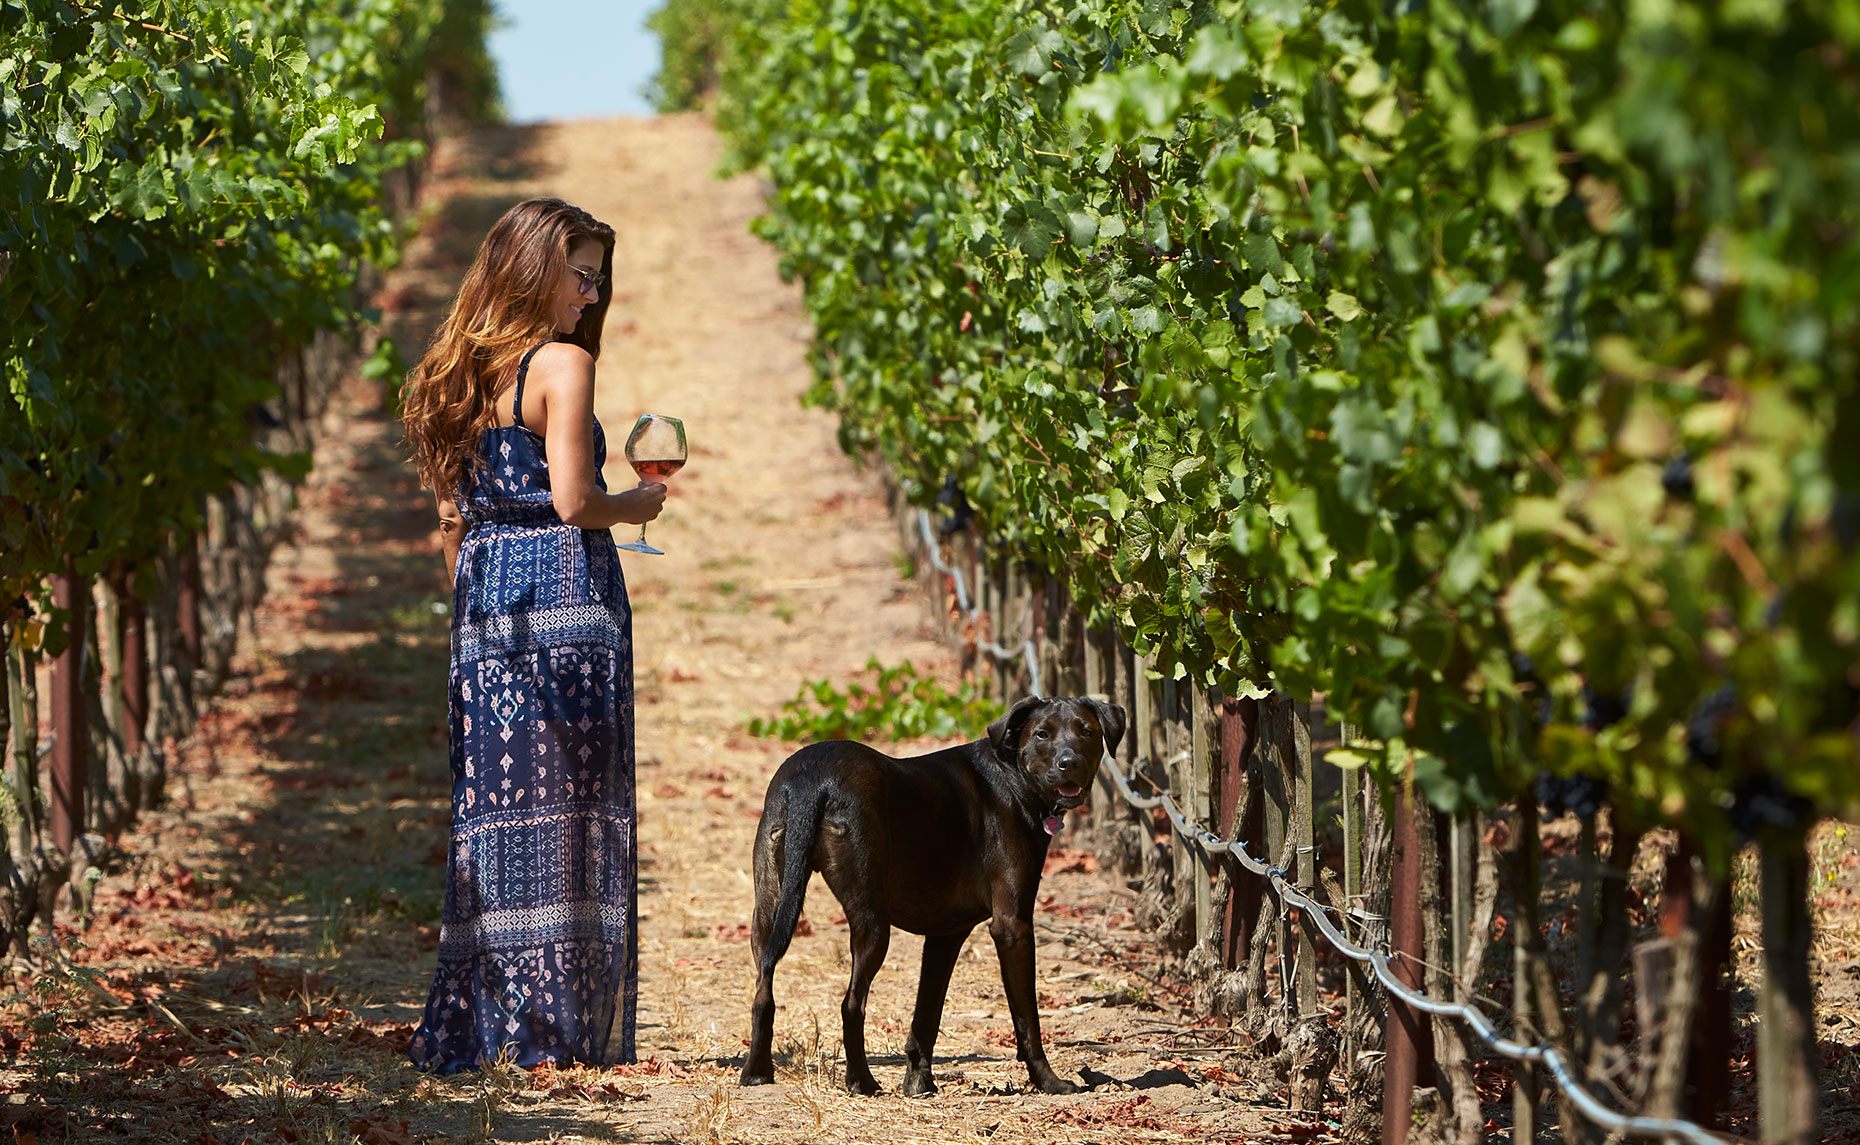 Bouchaine Winery Vineyards Napa valley  Lifestyle,  Photography by Brandon McGanty.  The Dogs of wine